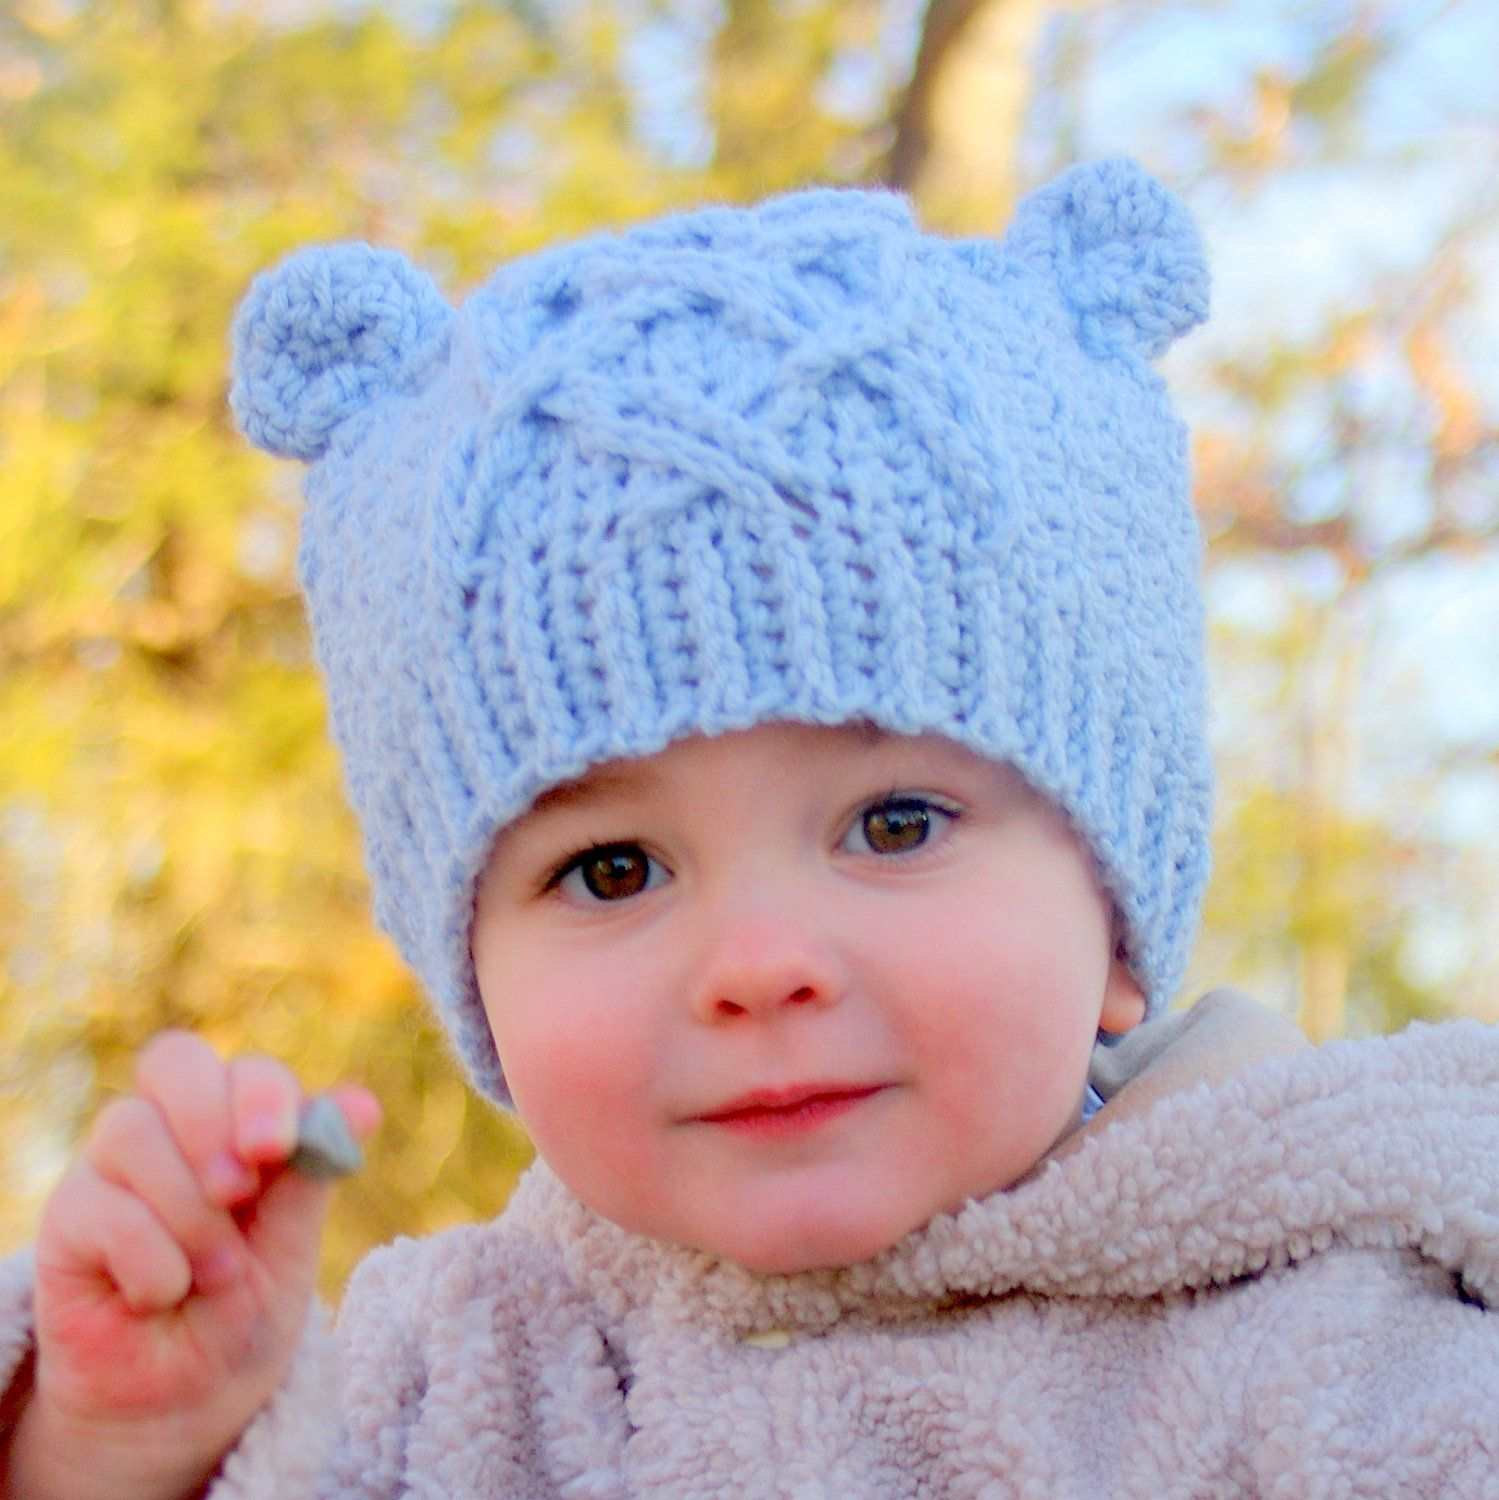 Crochet hat pattern little bear cable hat by twogirlspatterns crochet patterns little bear cable hat instant downlad crochet hat pattern number 114 baby toddler and childrens sizes included via etsy bankloansurffo Images